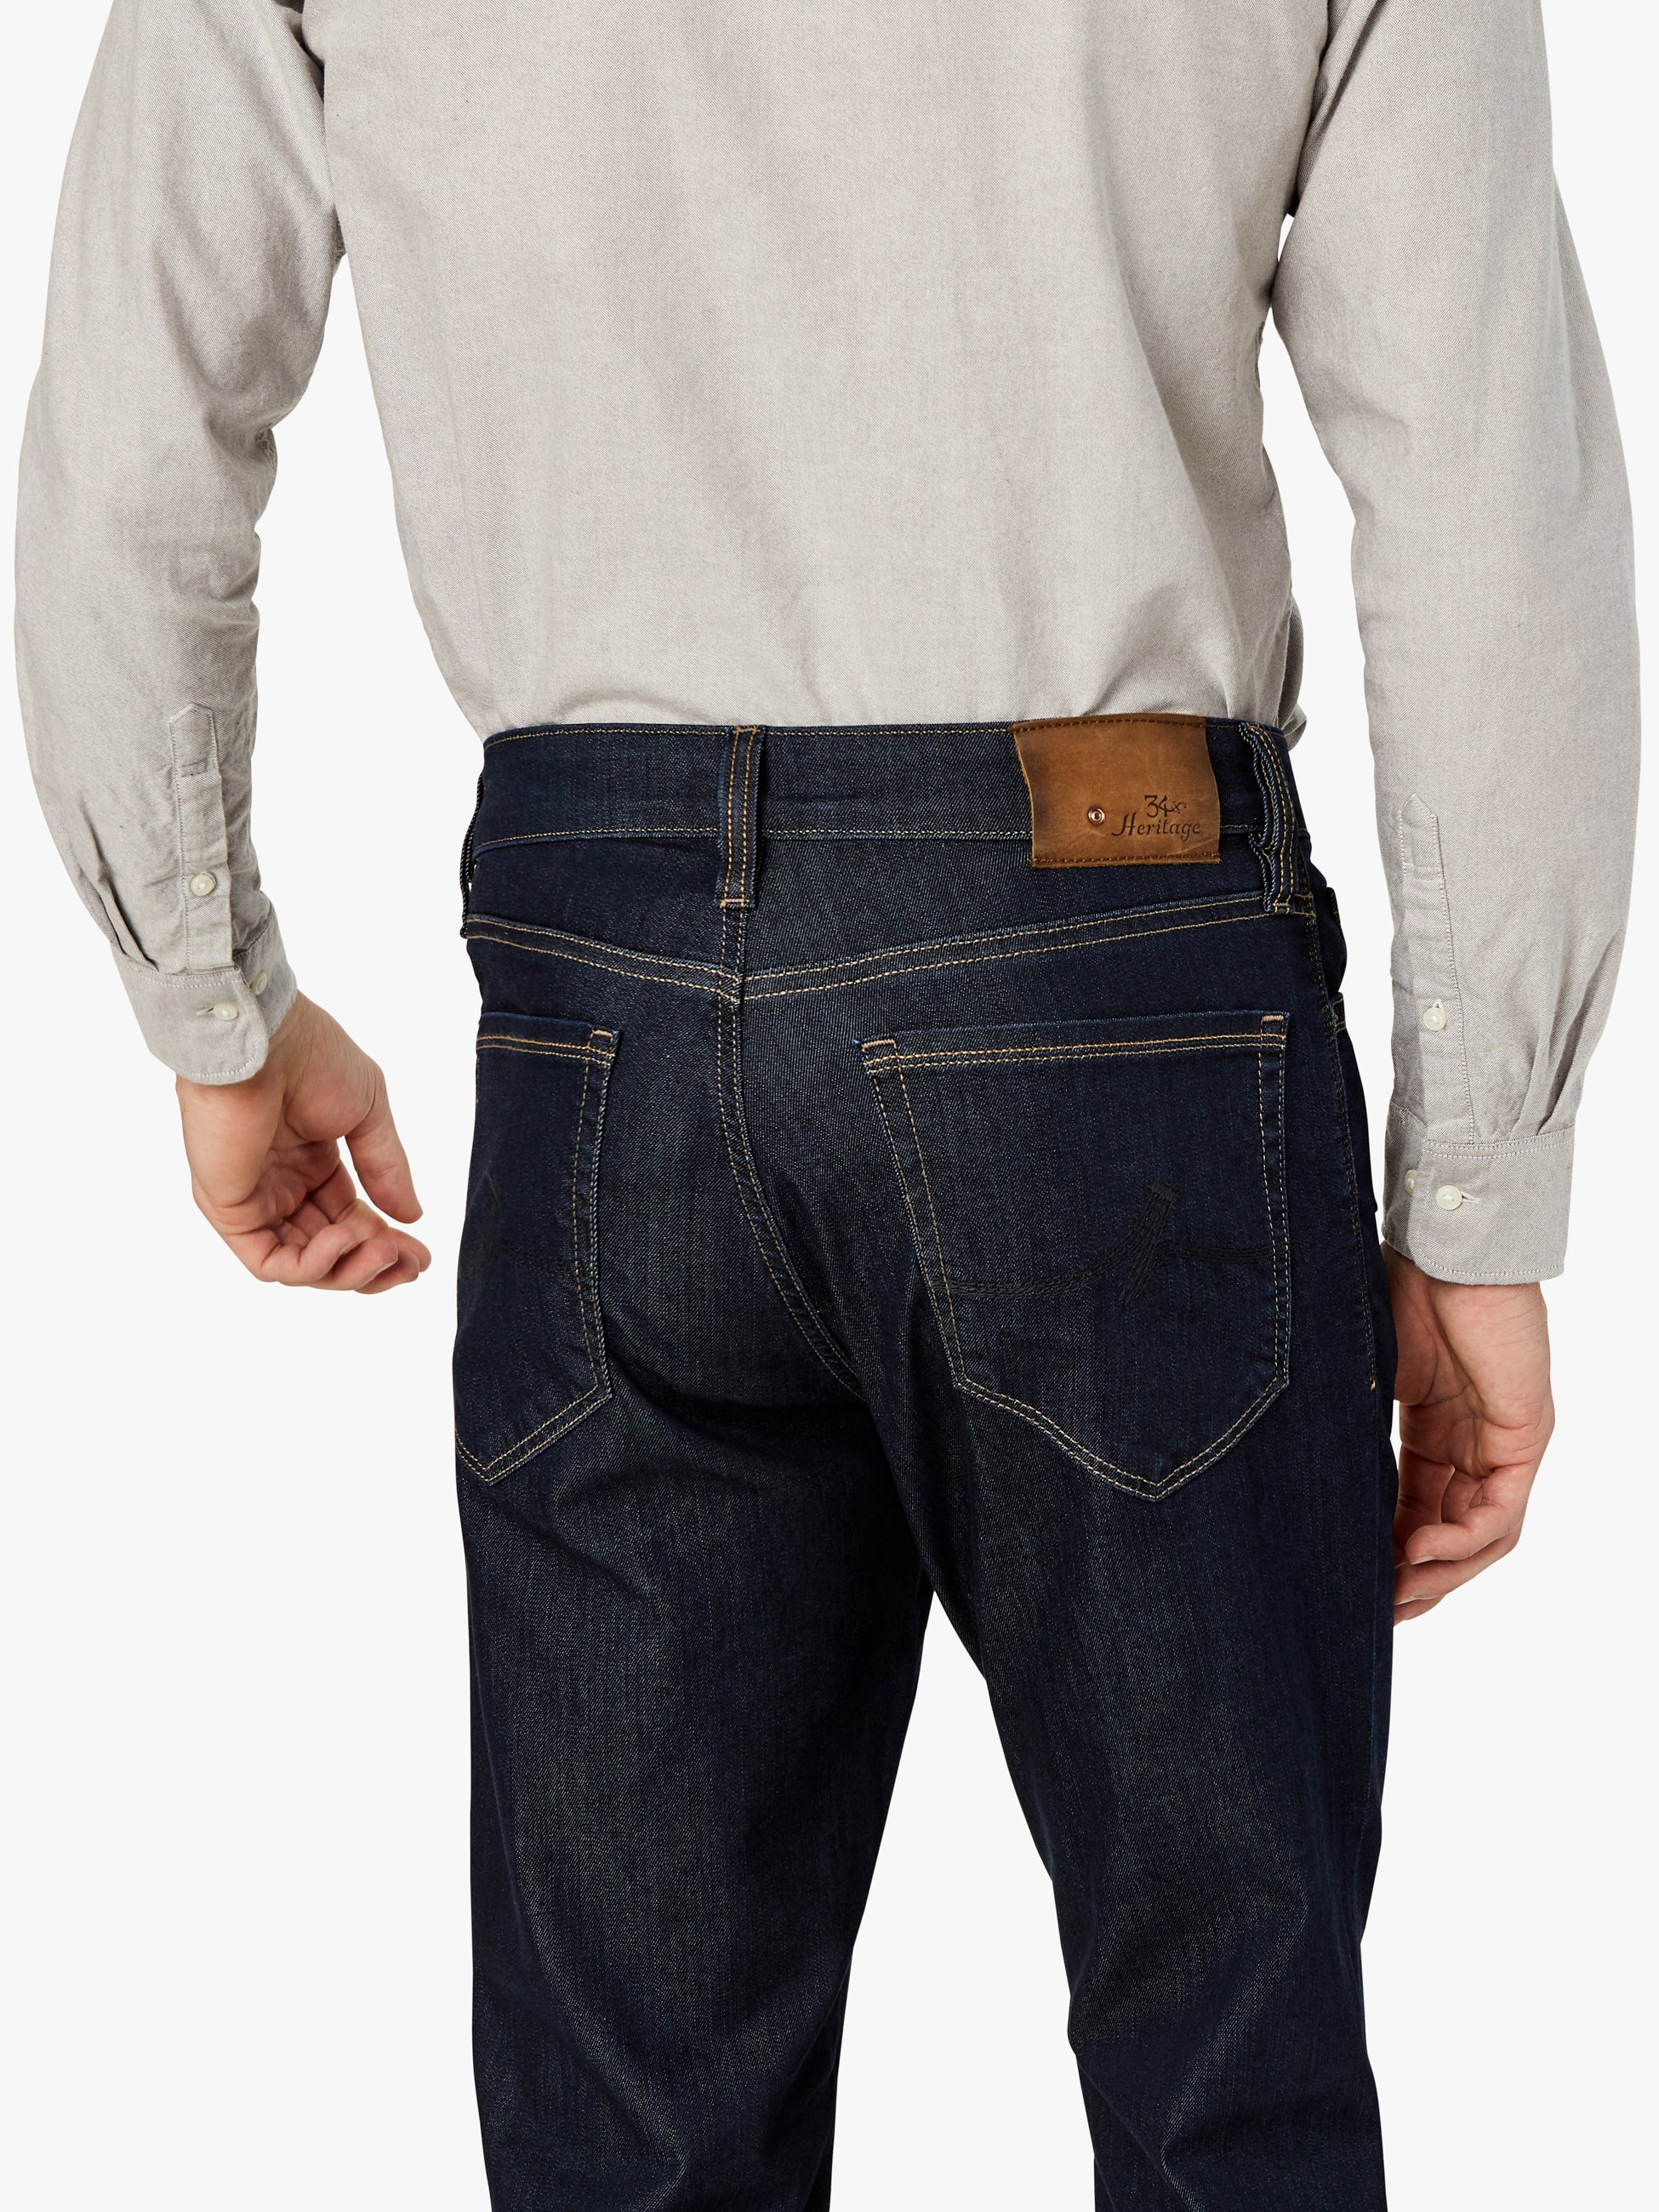 Charisma Relaxed Straight Jeans In Rinse Vintage Image 7